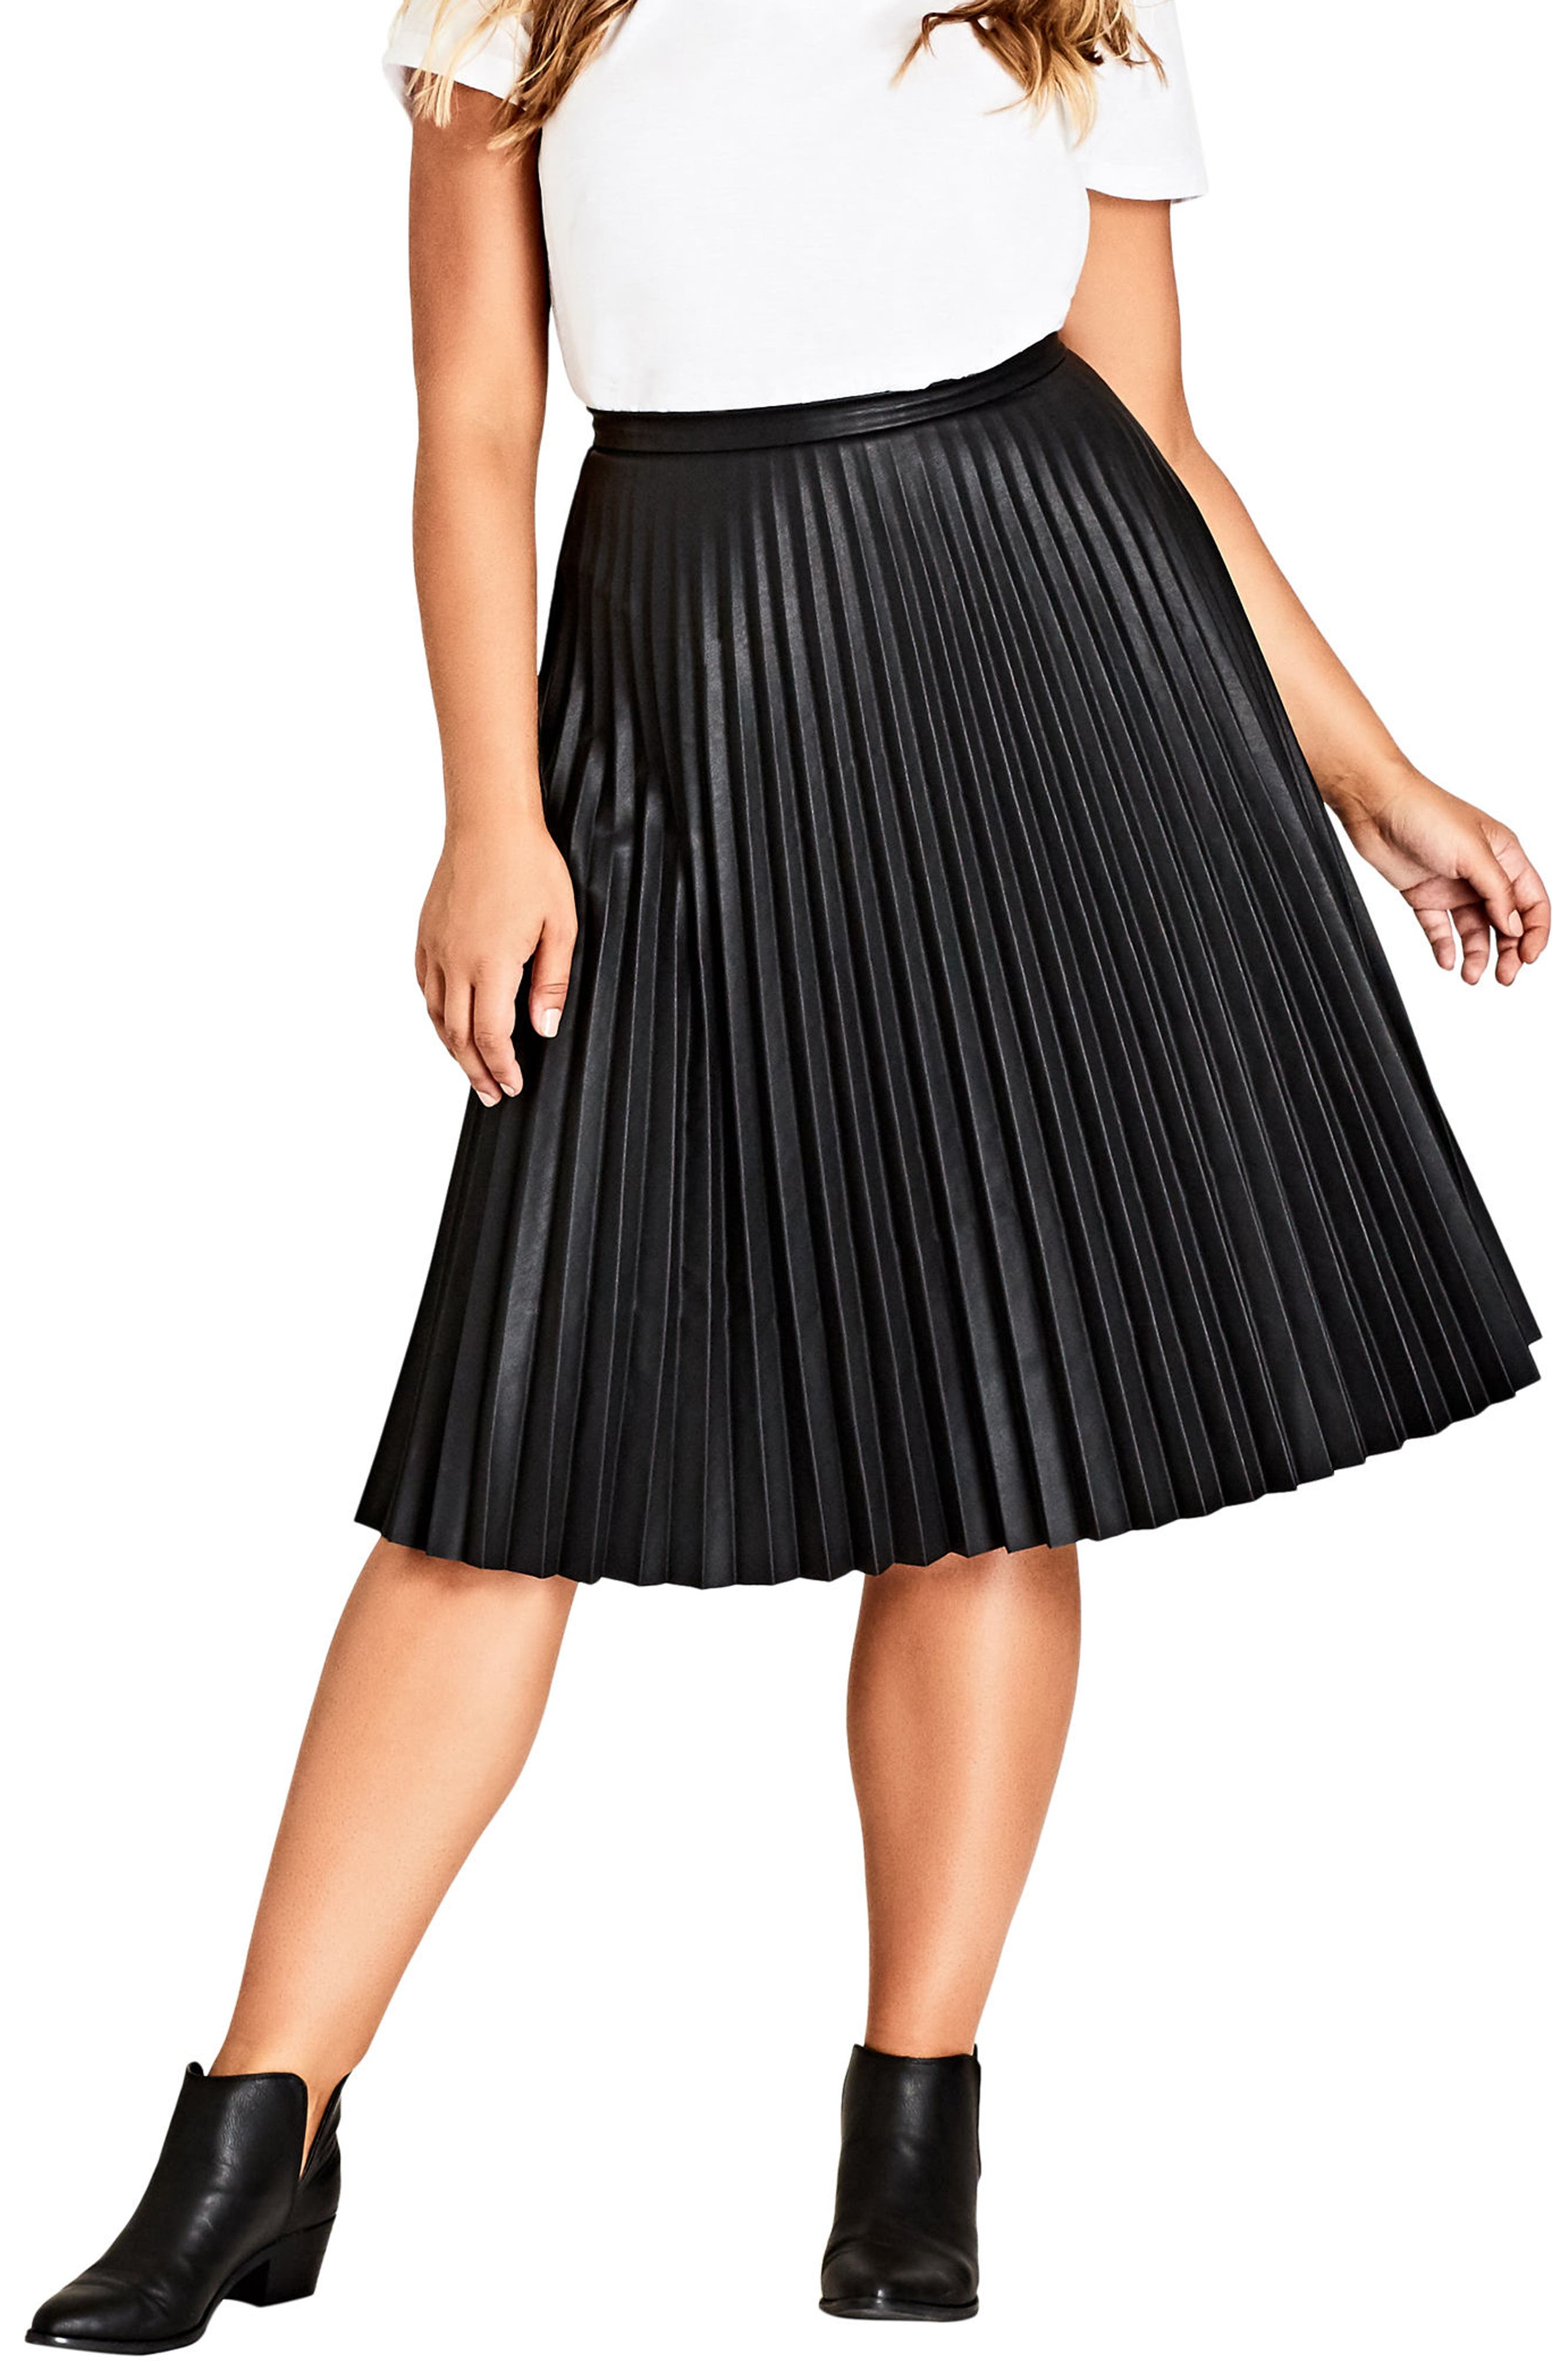 Main Image - City Chic Pleated Faux Leather Skirt (Plus Size)